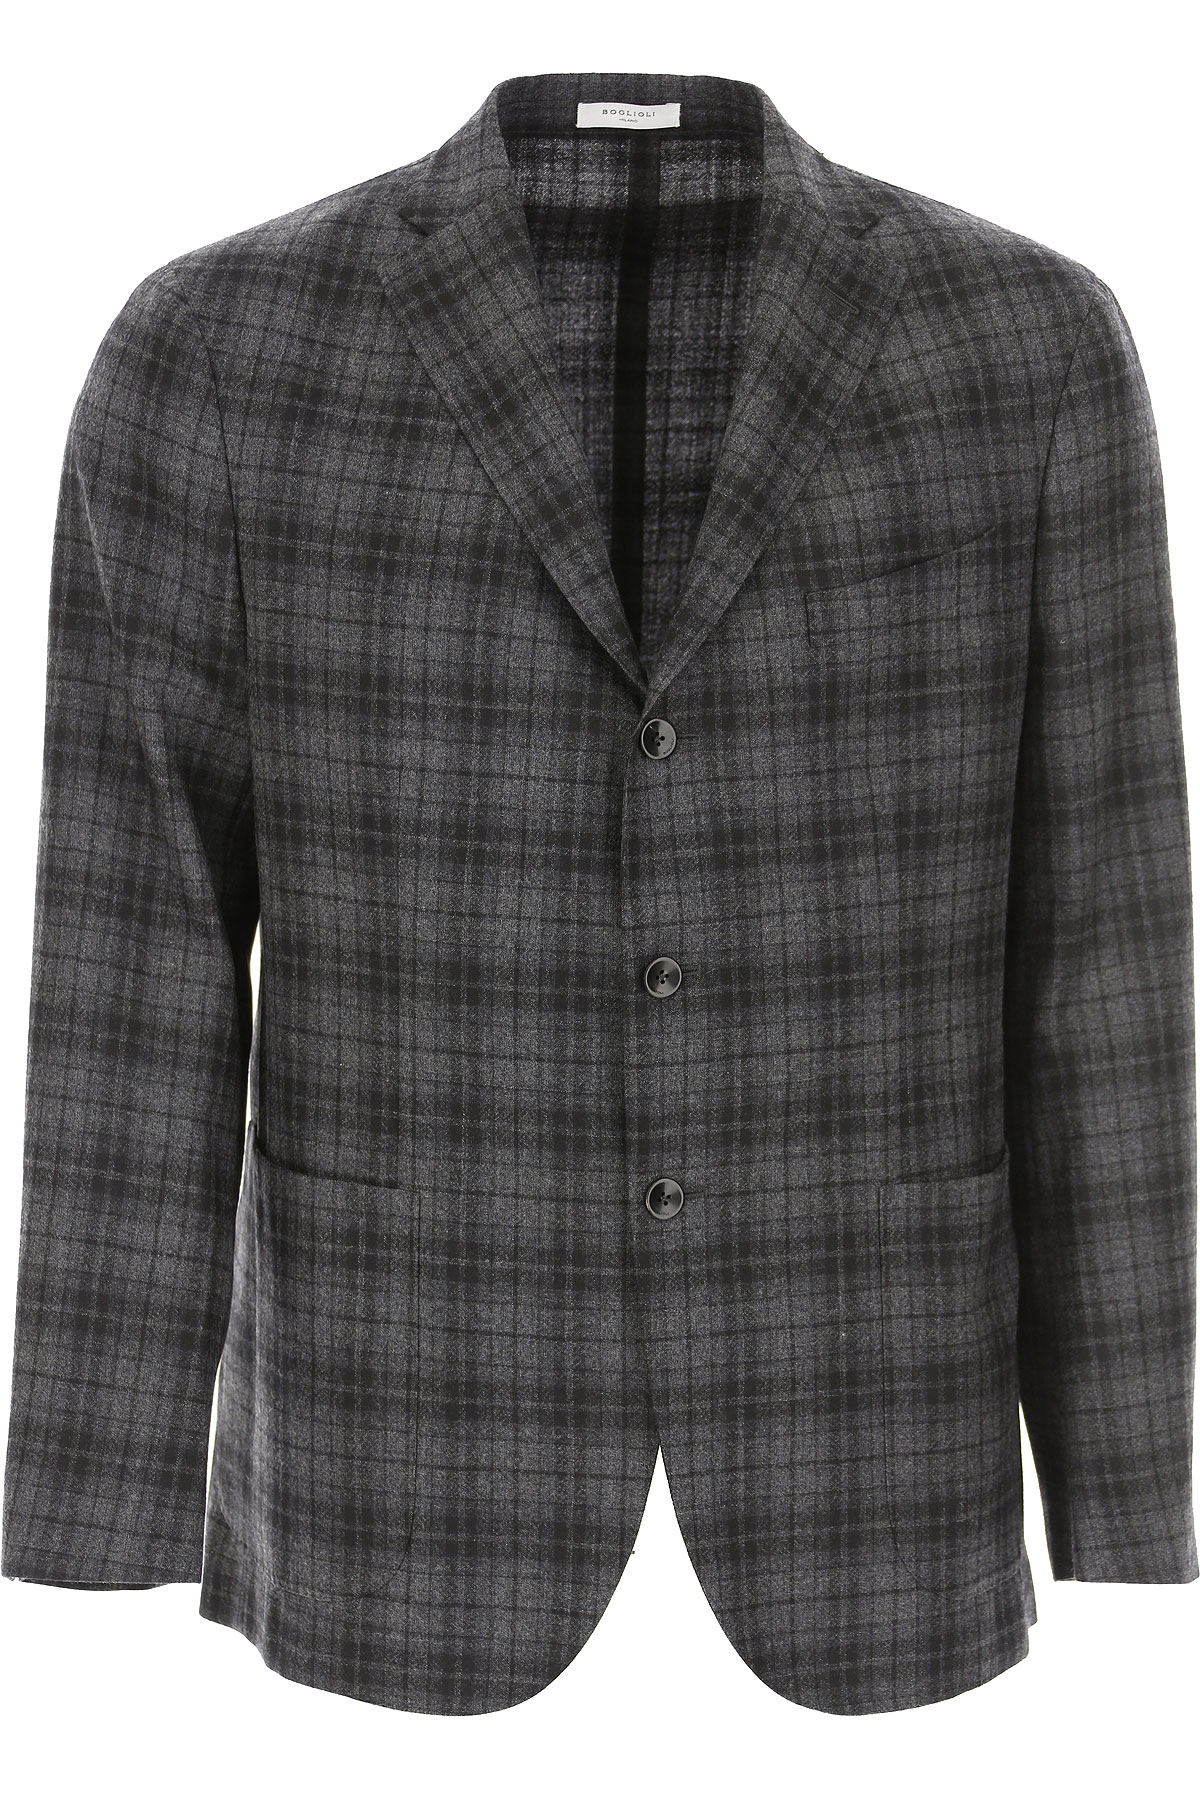 Boglioli Blazer for Men, Sport Coat On Sale, Medium Grey, Virgin wool, 2019, L M XL XXXL